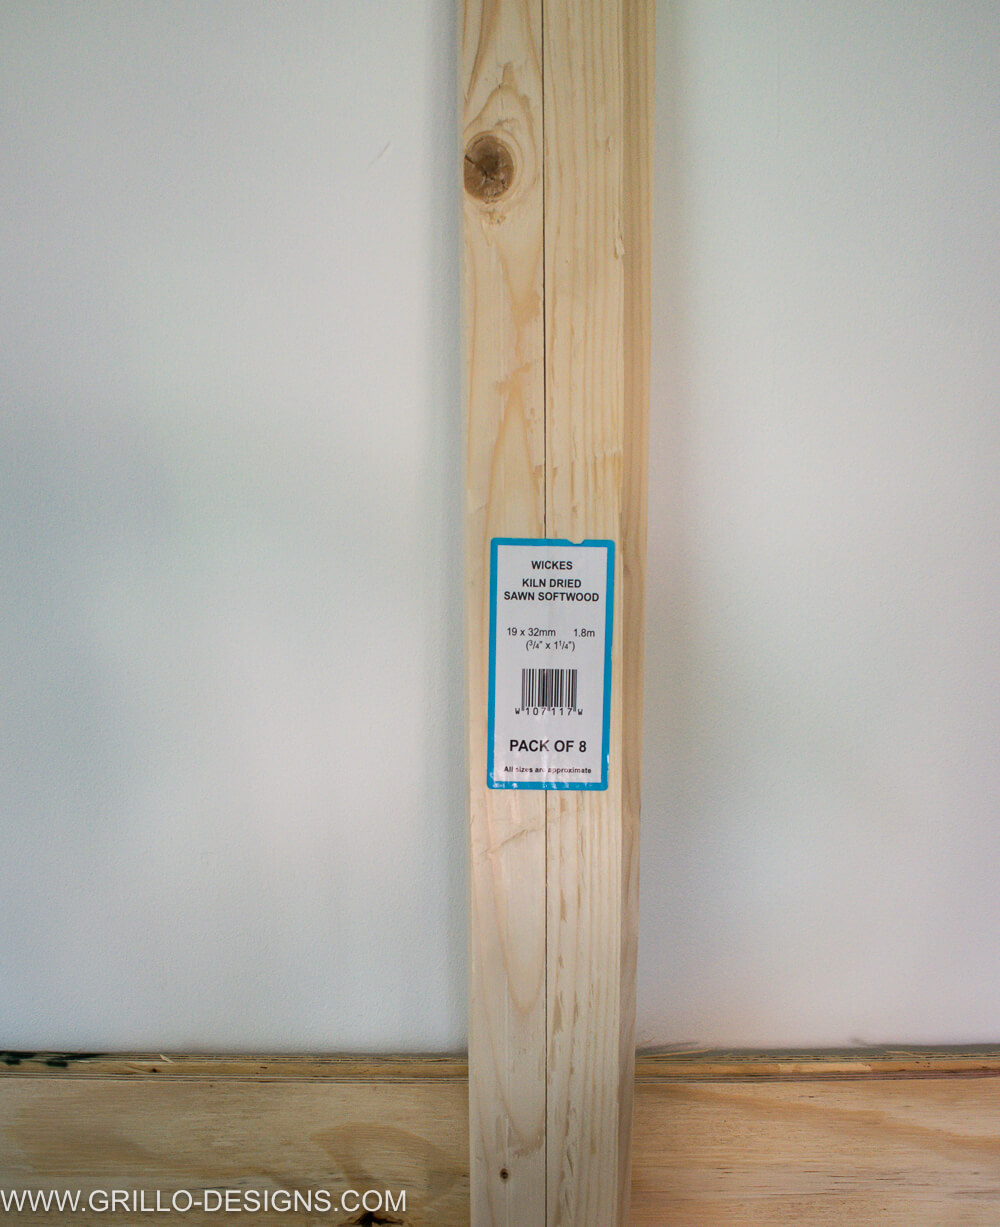 Sawn 8-pack of kilo softwood, leaning against a white wall